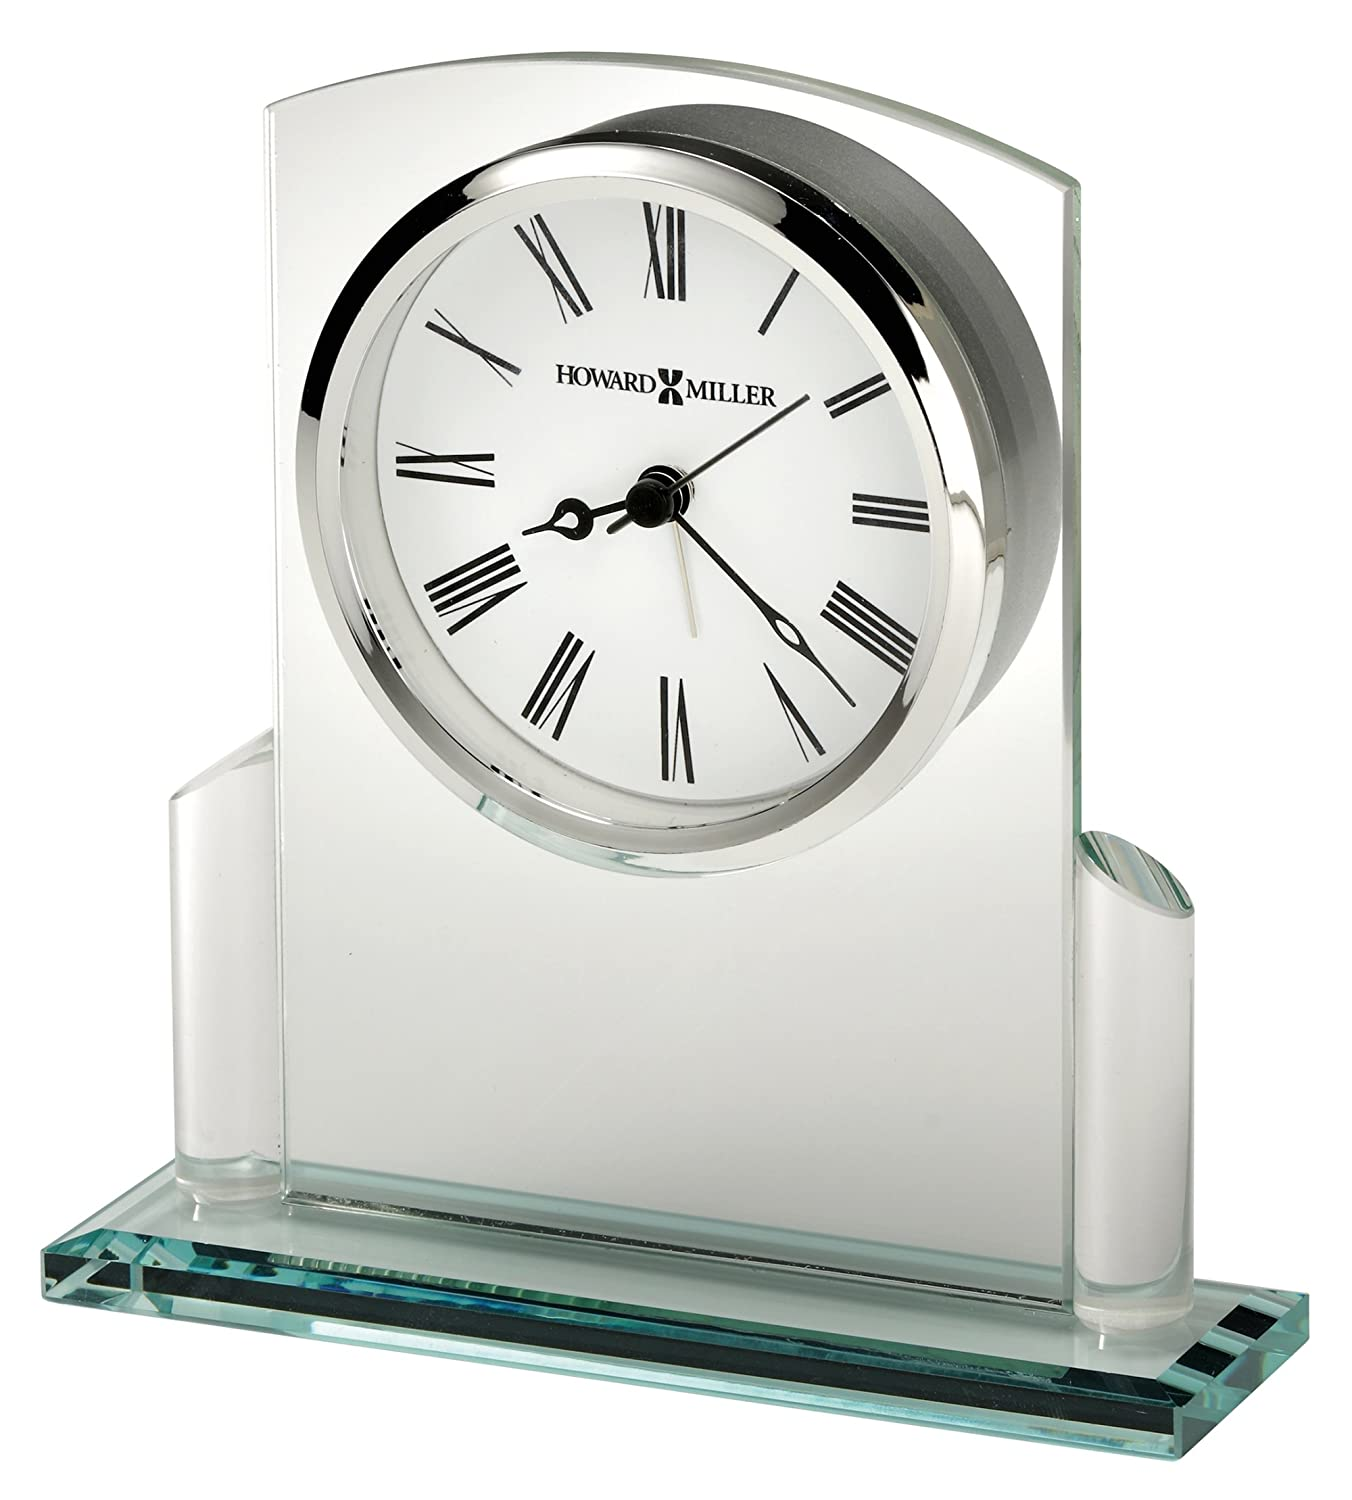 645-799 colton Tabletop Clock Howard Miller 645799